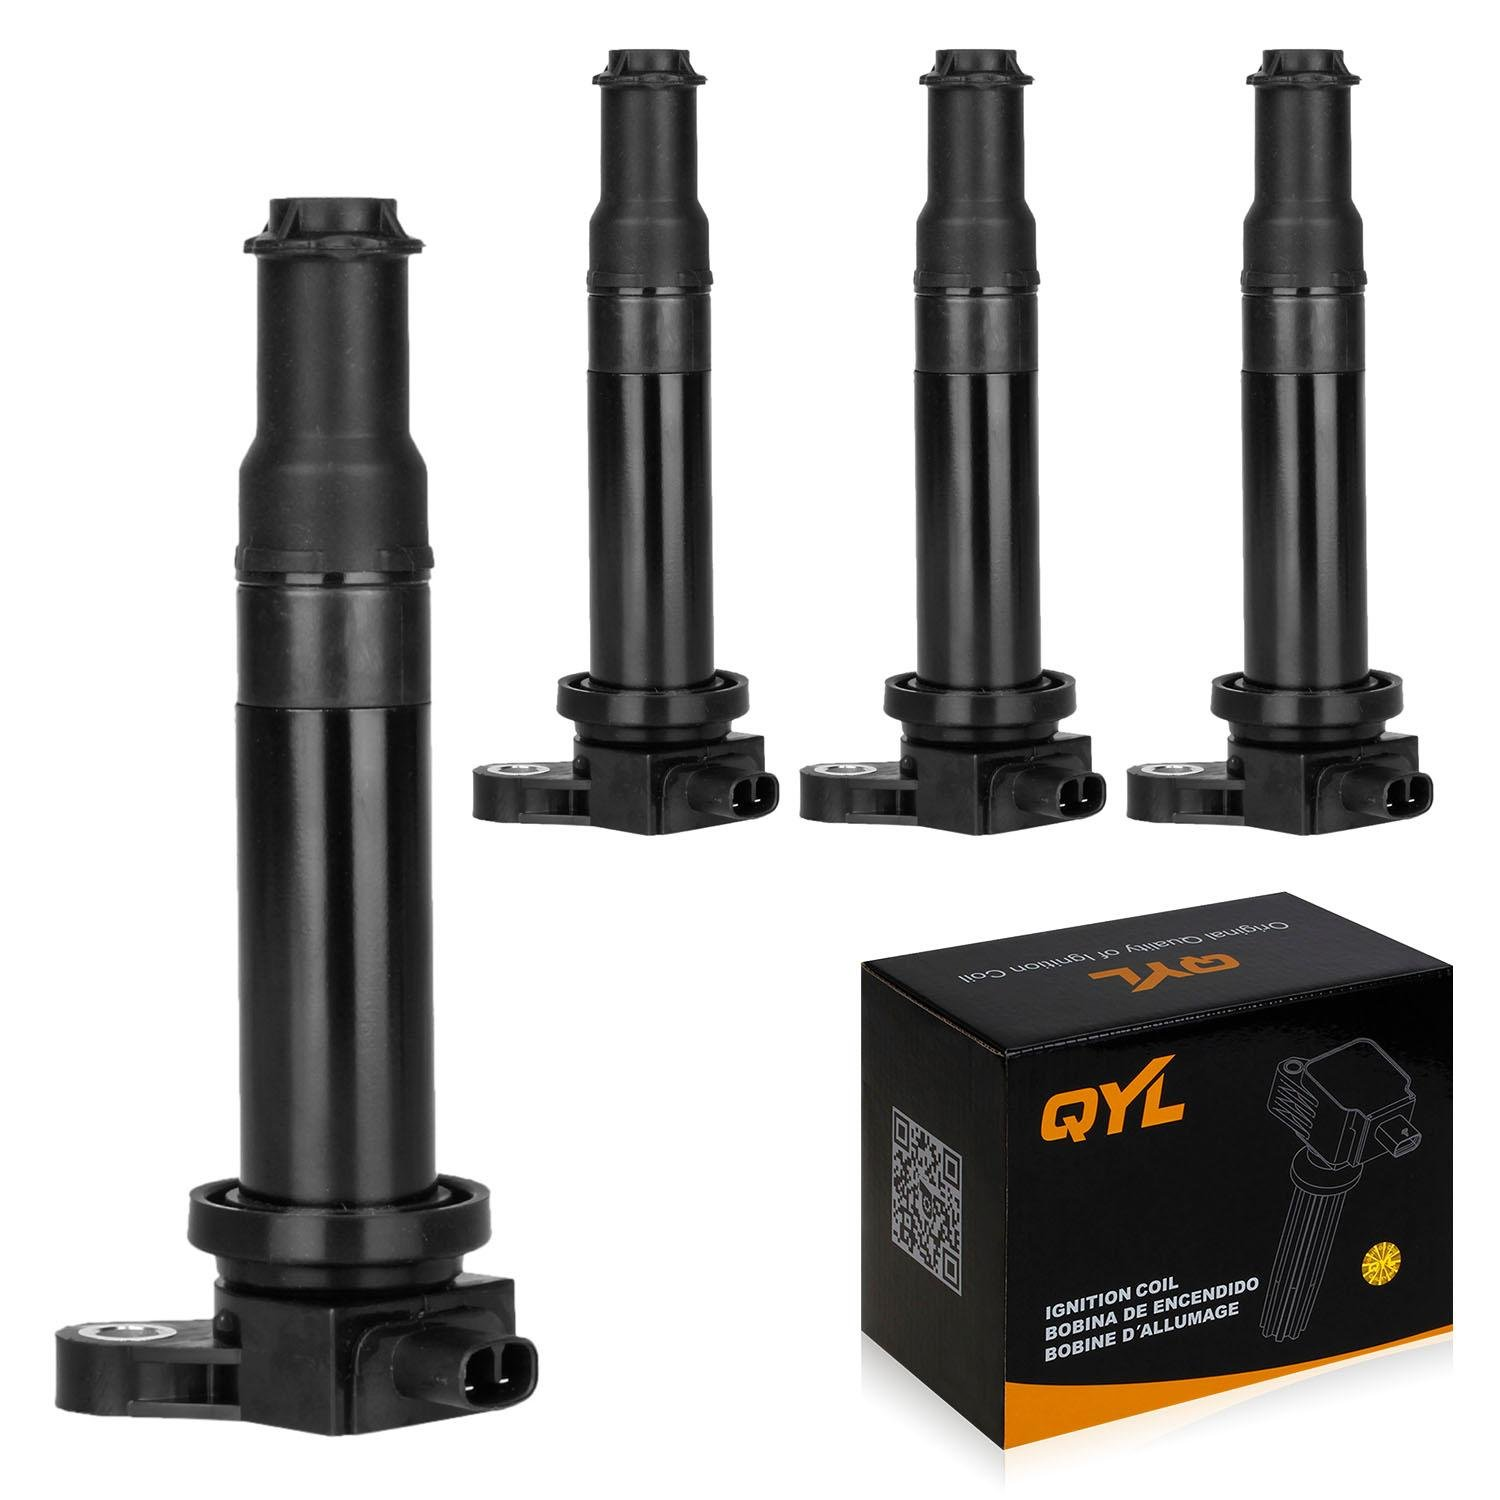 QYL Pack of 4 Ignition Coil Pack Replacement for Hyundai Accent Kia Rio Rio5 LX Attitude 2006-2010 2011 1.6L I4 UF499 27301-26640 C1543 5C1586 UF-499 by QYL